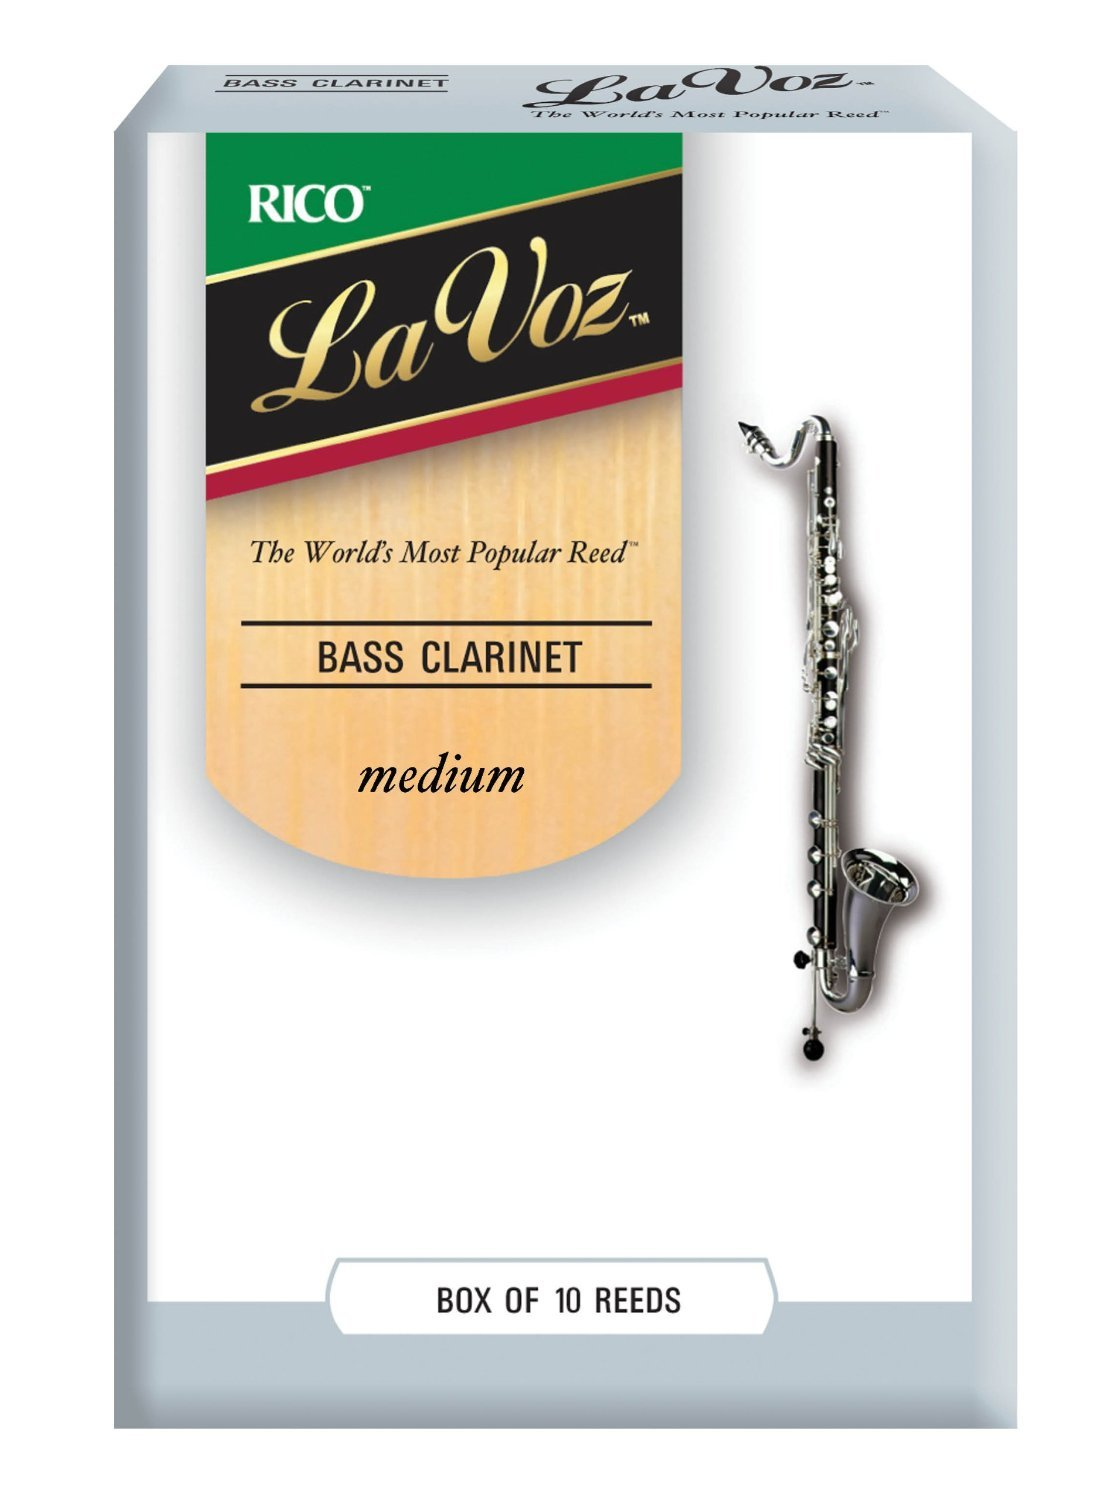 La Voz Bass Clarinet Reeds, Strength Medium, 10-pack